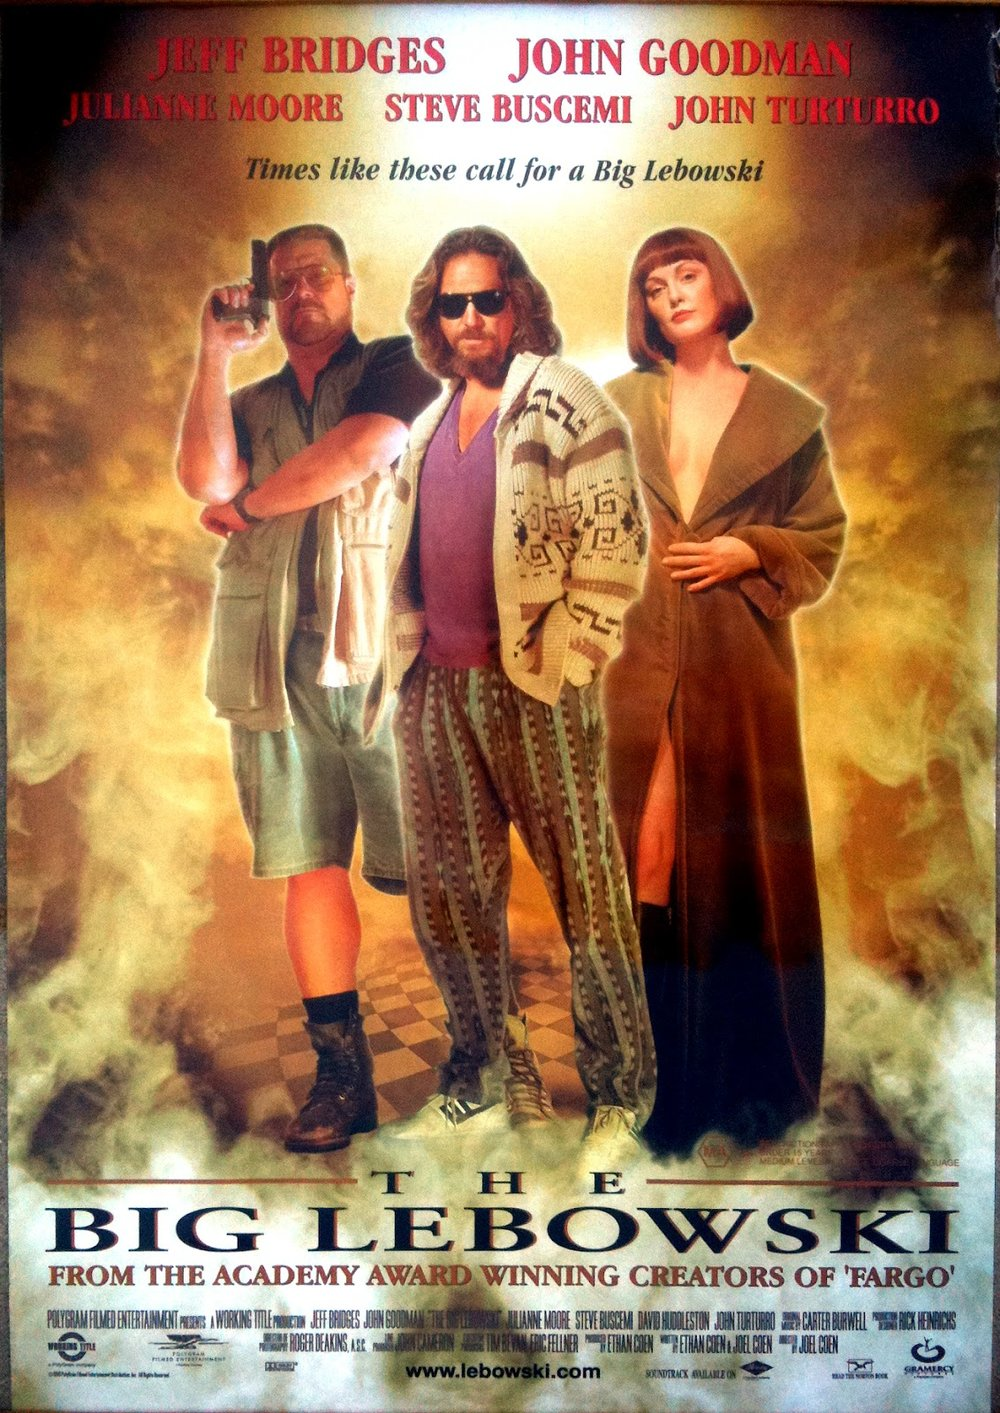 THE BIG LEBOWSKI - 99/100